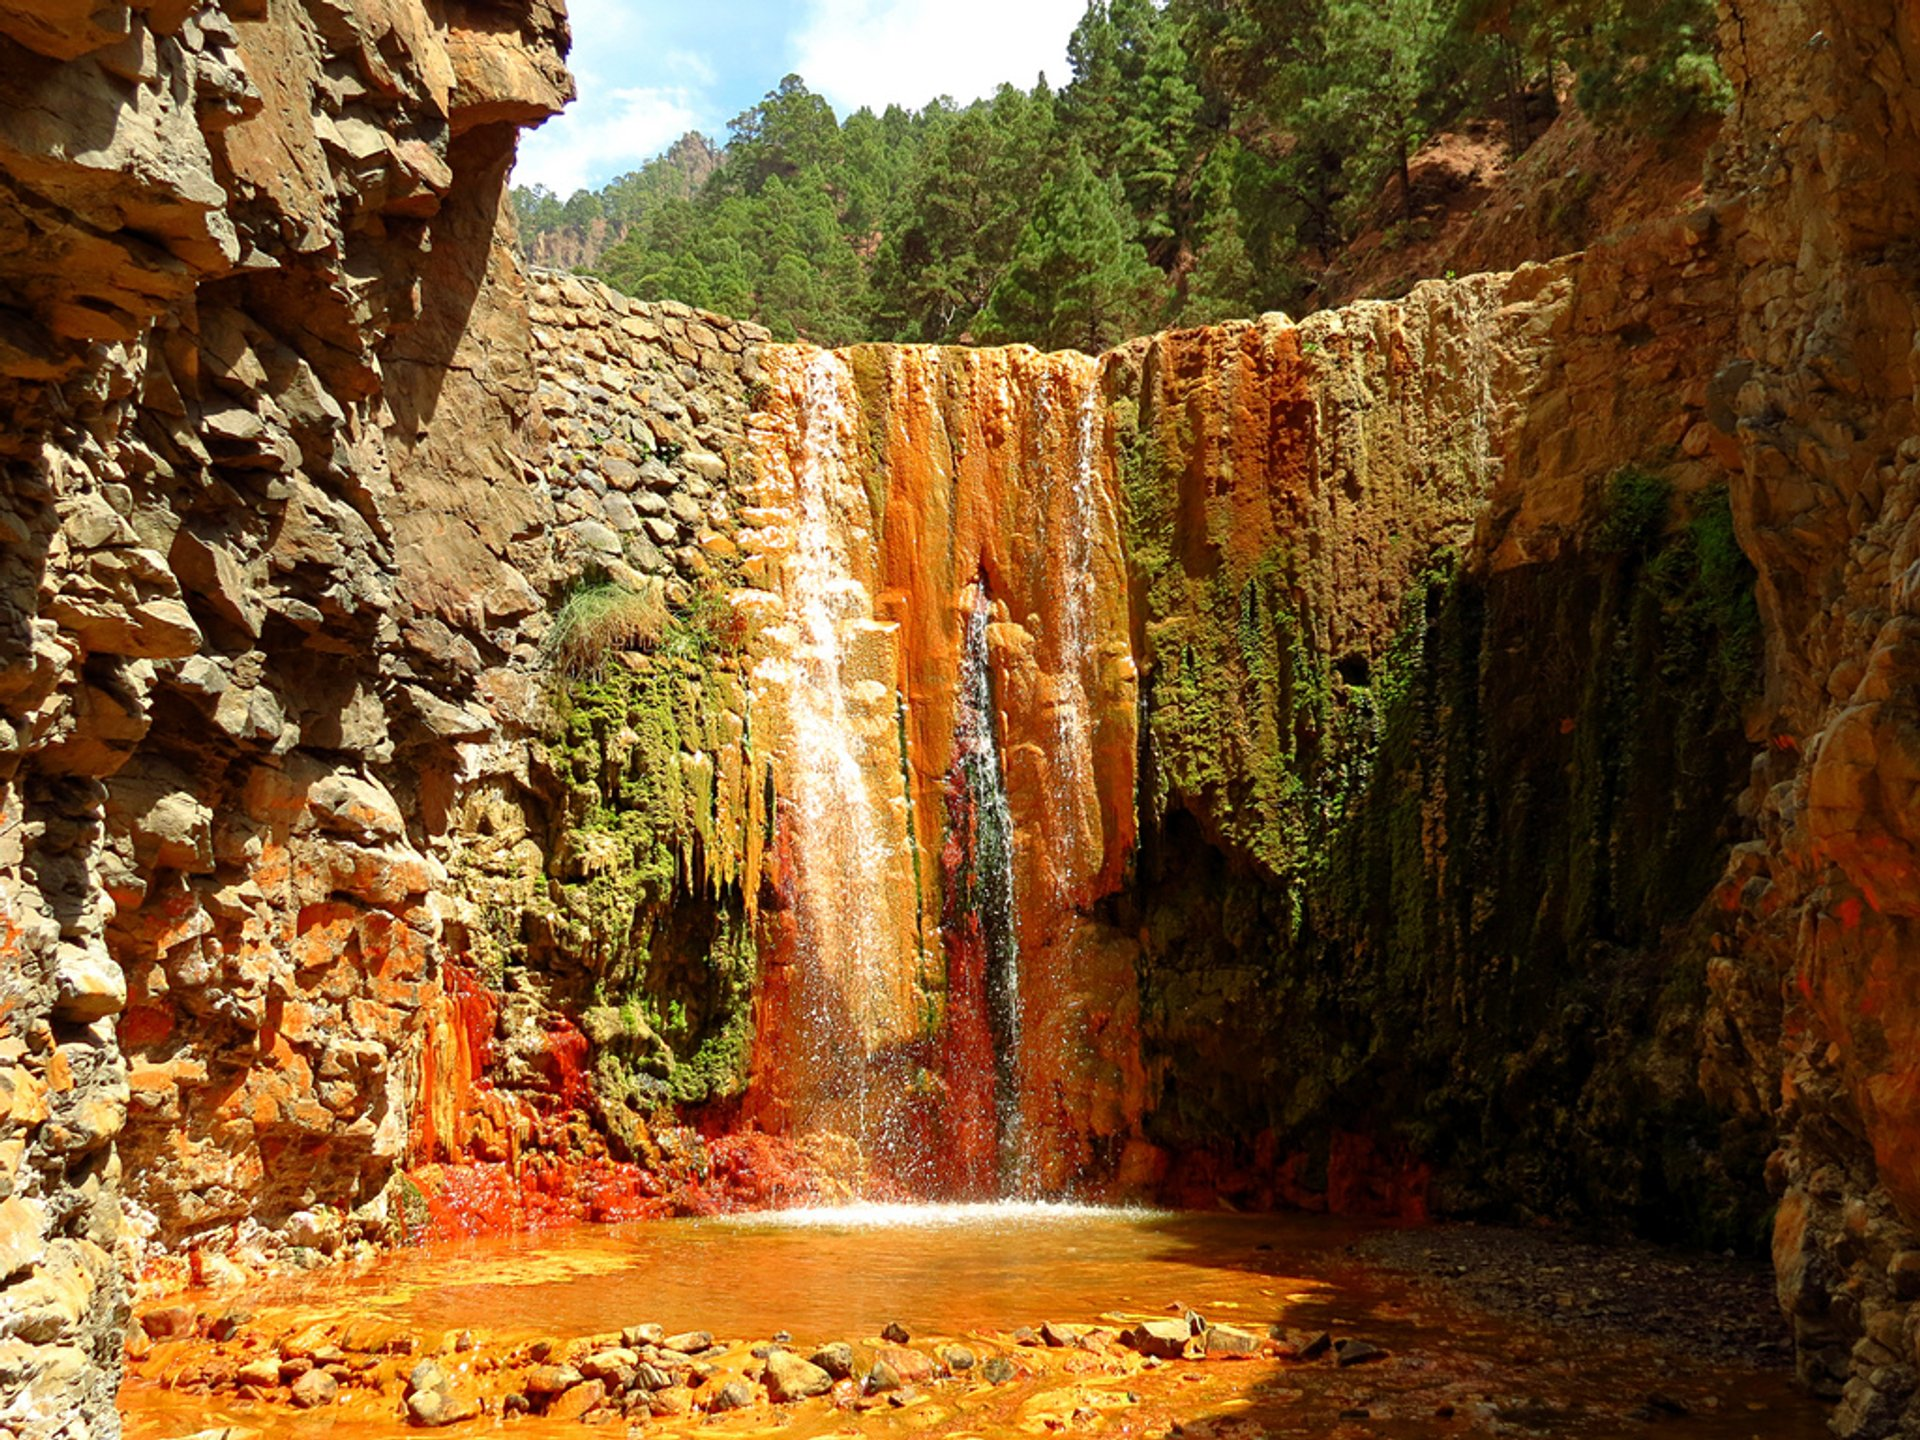 Cascade of Colours in Caldera de Taburiente in Canary Islands 2020 - Best Time